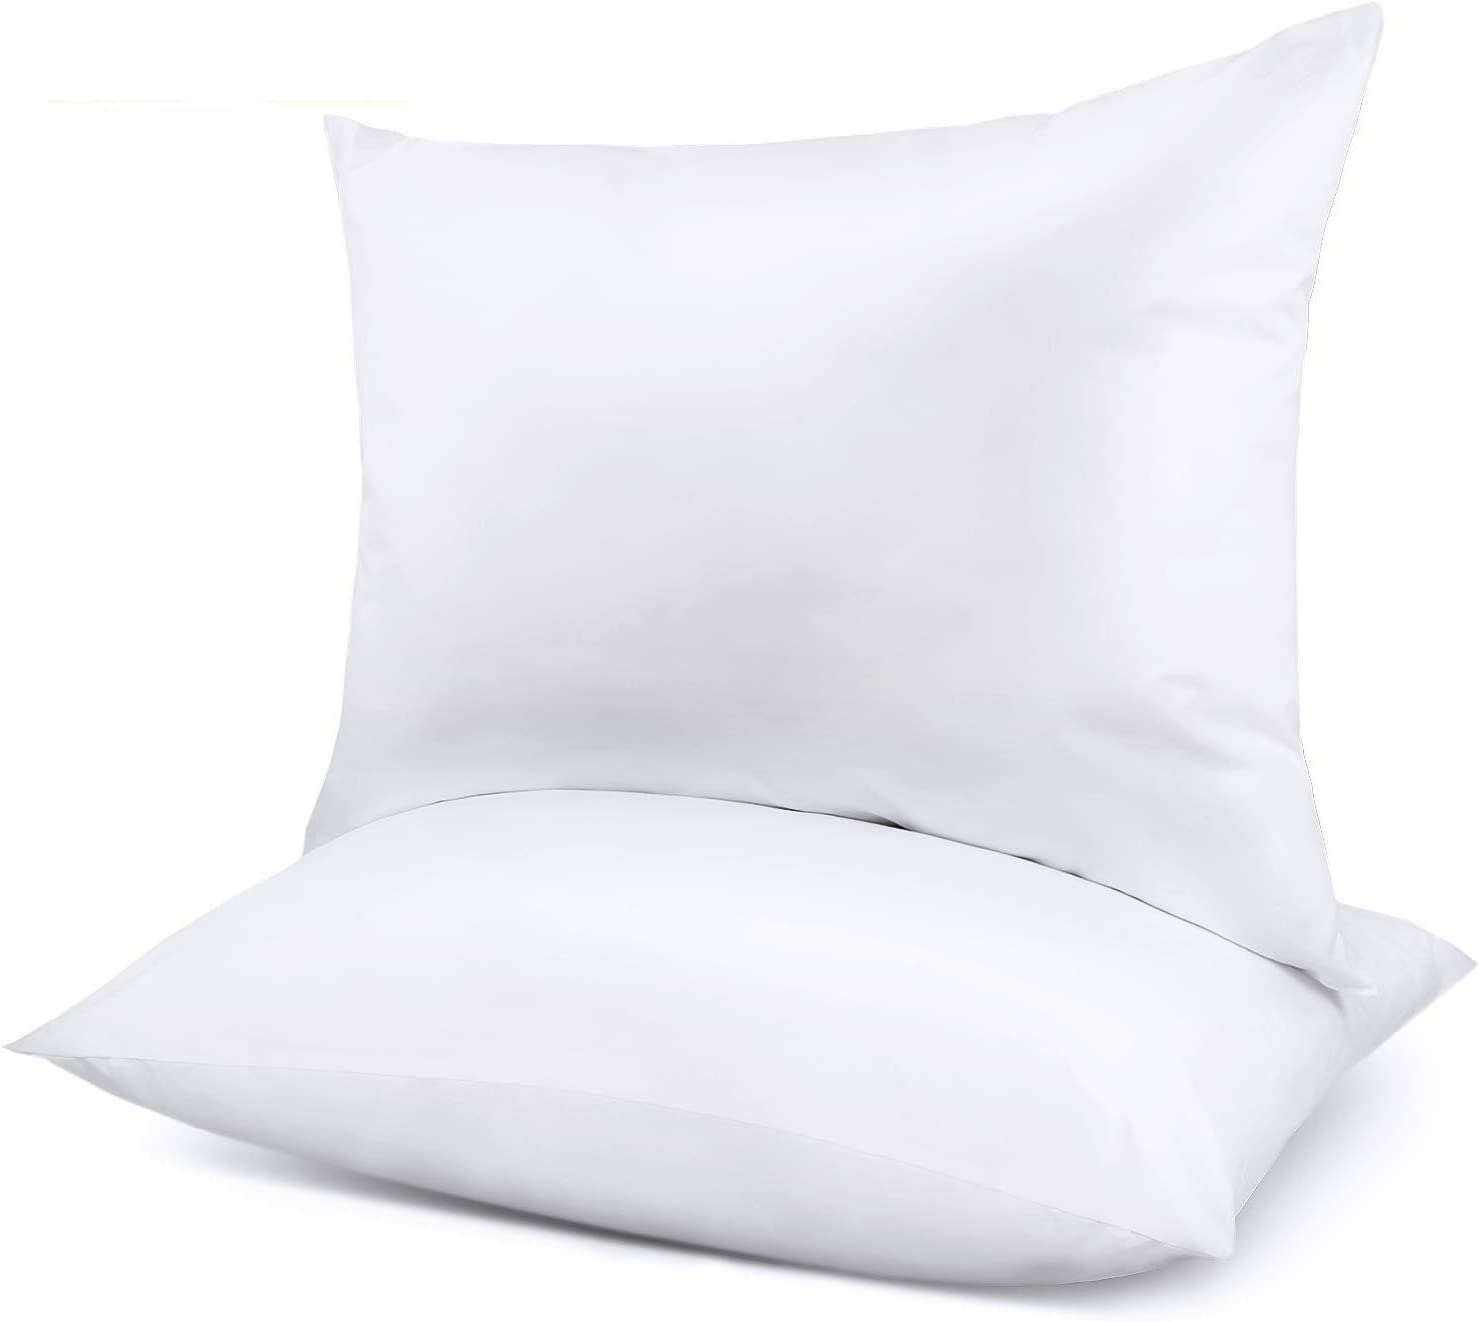 Pillows for Sleeping 2 Pack, Bed Pillows for Neck Pain Premium Down Alternative Cooling Hotel Pillow for Side & Back Sleeper with Cotton Cover Standard 20X26 White